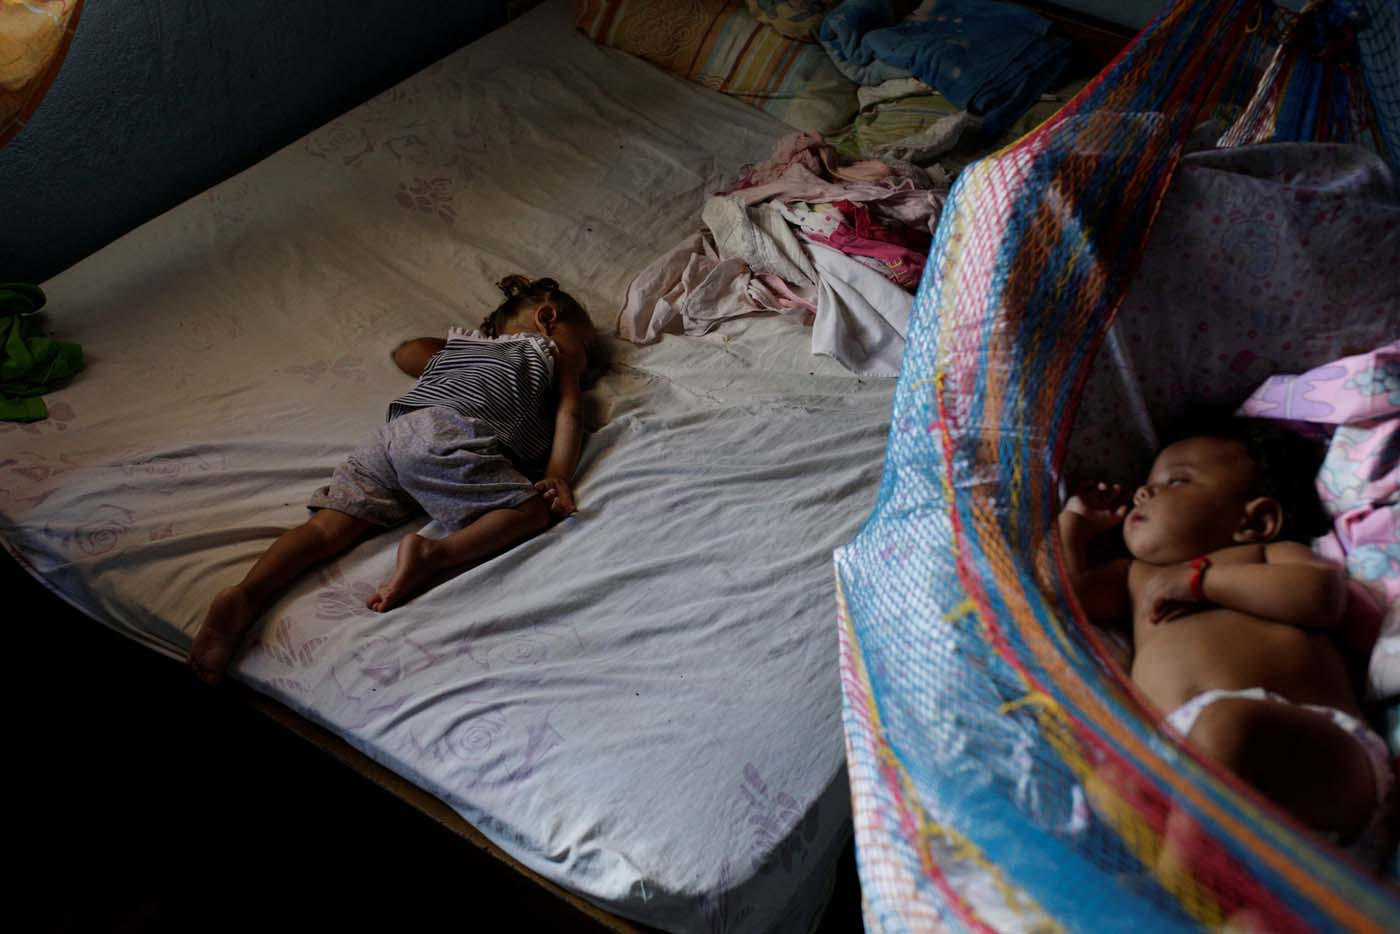 Sisters of Eliannys Vivas, who died from diphtheria, sleep in a room at their home in Pariaguan, Venezuela January 26, 2017. Picture taken January 26, 2017. REUTERS/Marco Bello